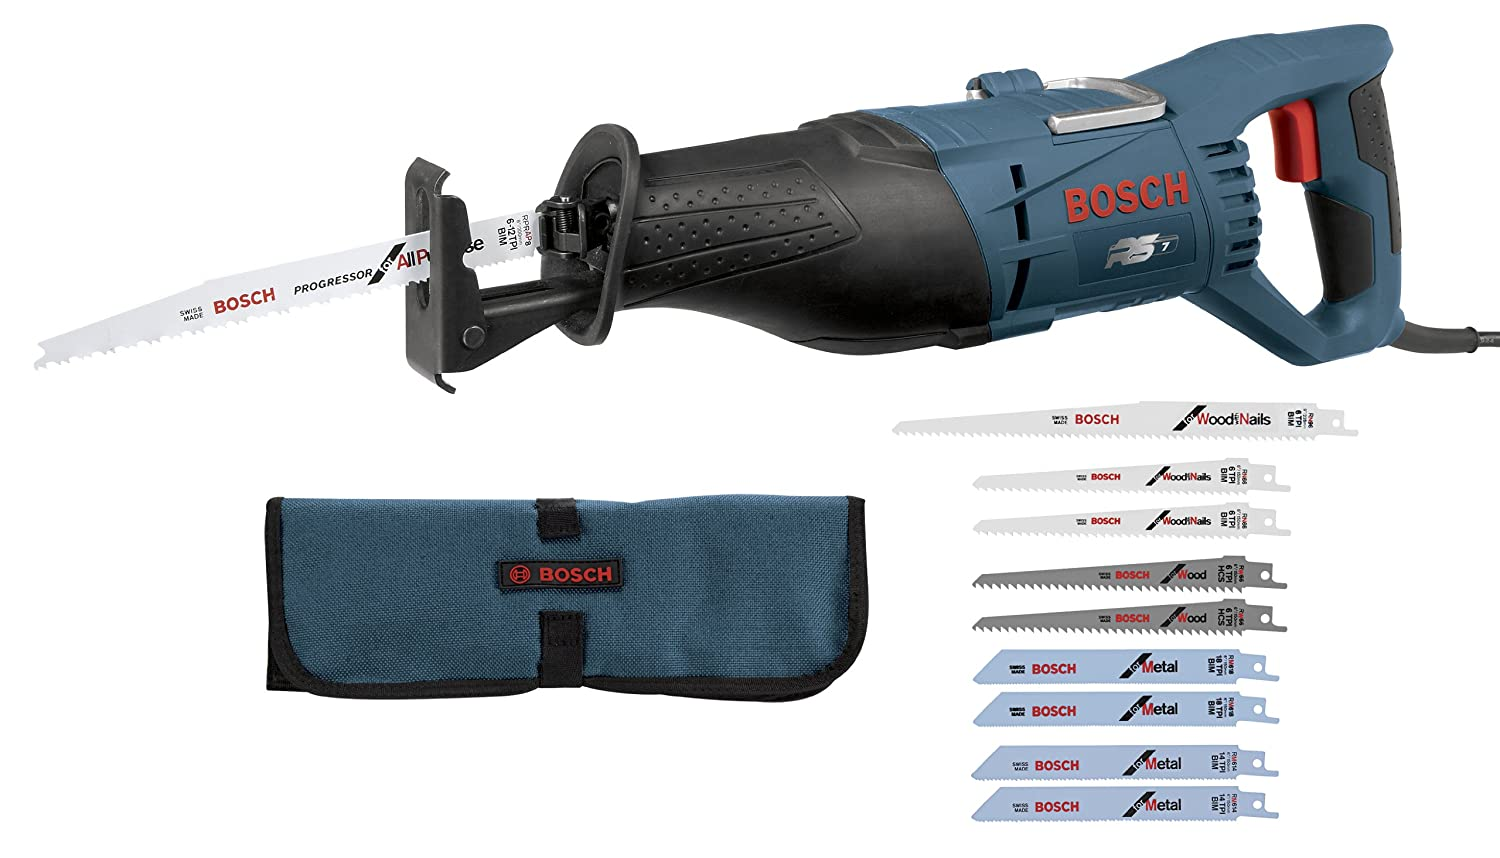 Bosch RS7 + RAP10PK 1-1/8-Inch 11-Amp Reciprocating Saw and 10-Piece General Purpose Blade Set $89.99